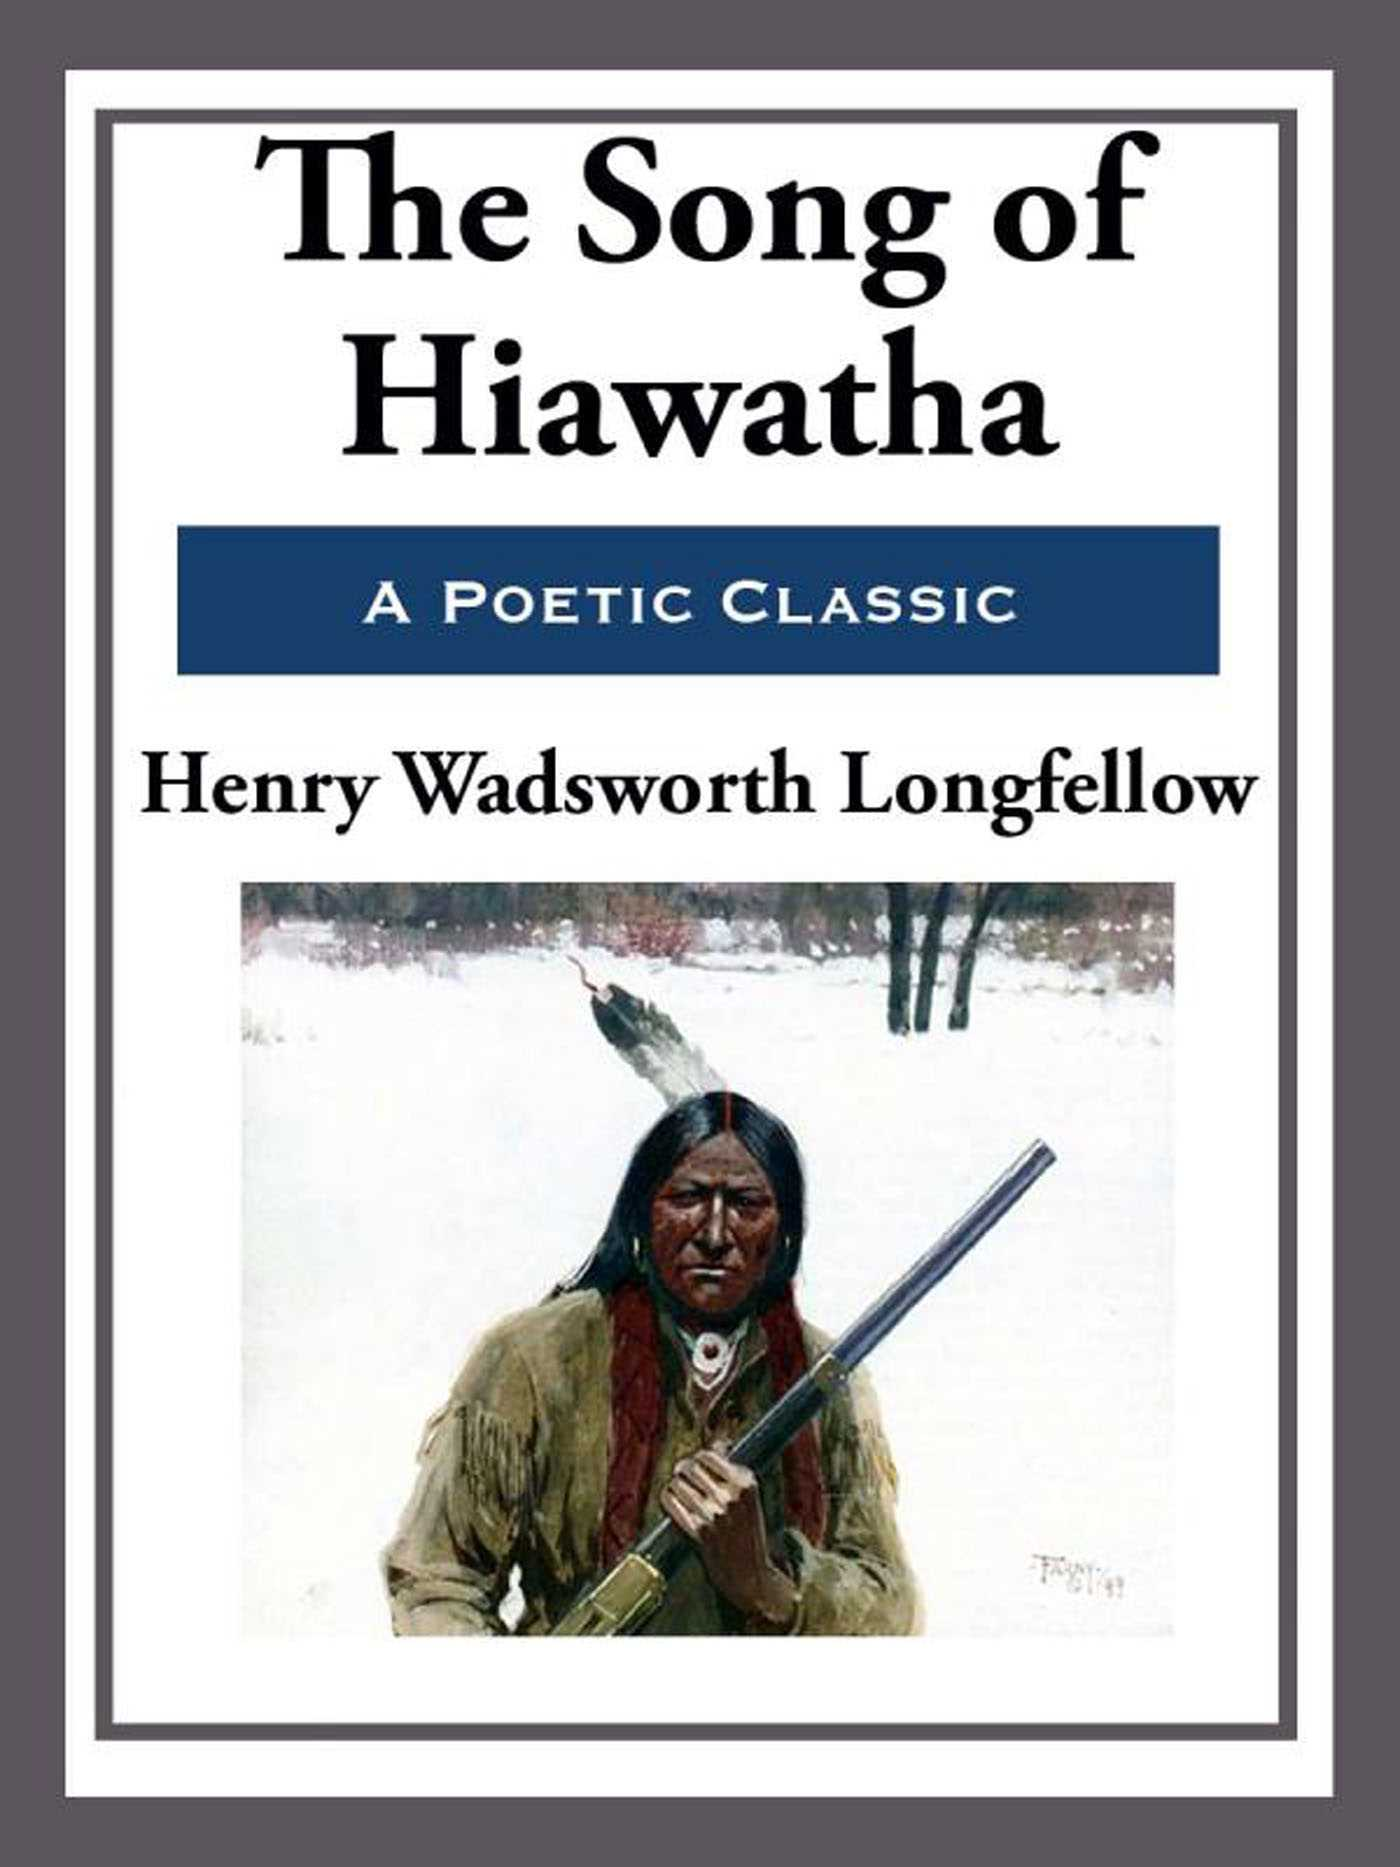 the song of hiawatha ebook by henry wadsworth longfellow  the song of hiawatha 9781625586797 hr